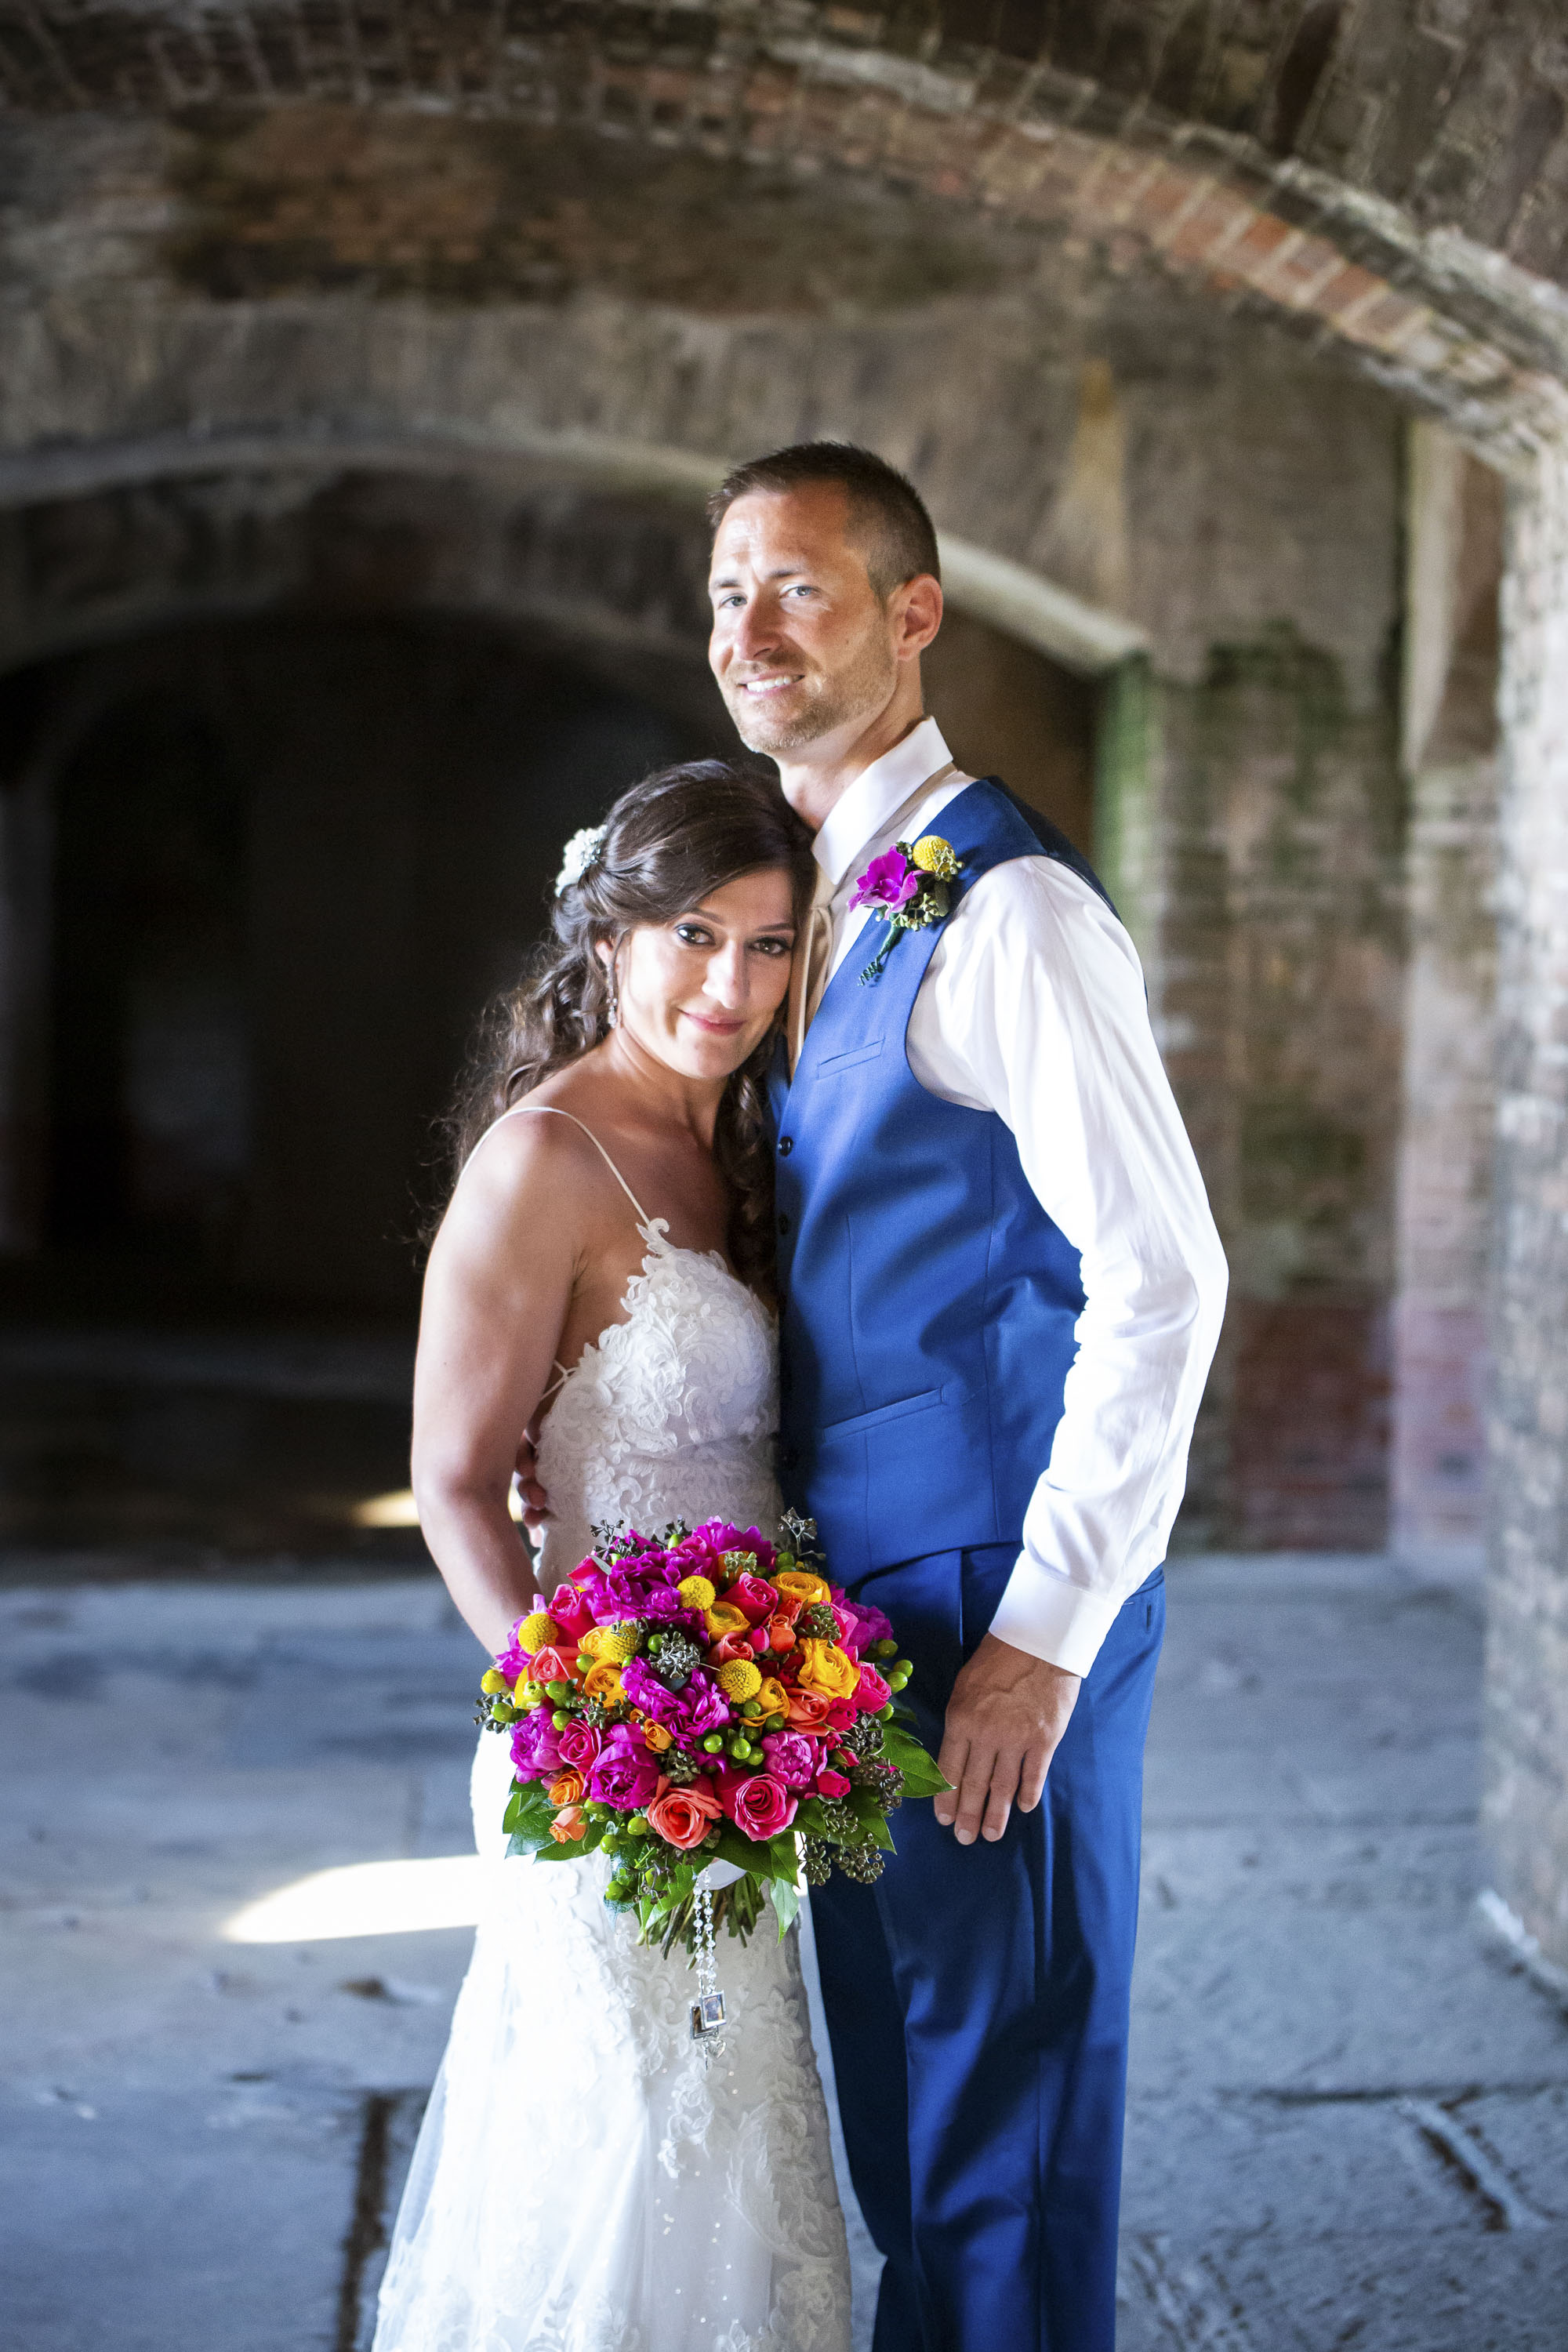 Couple getting married under fortress arches